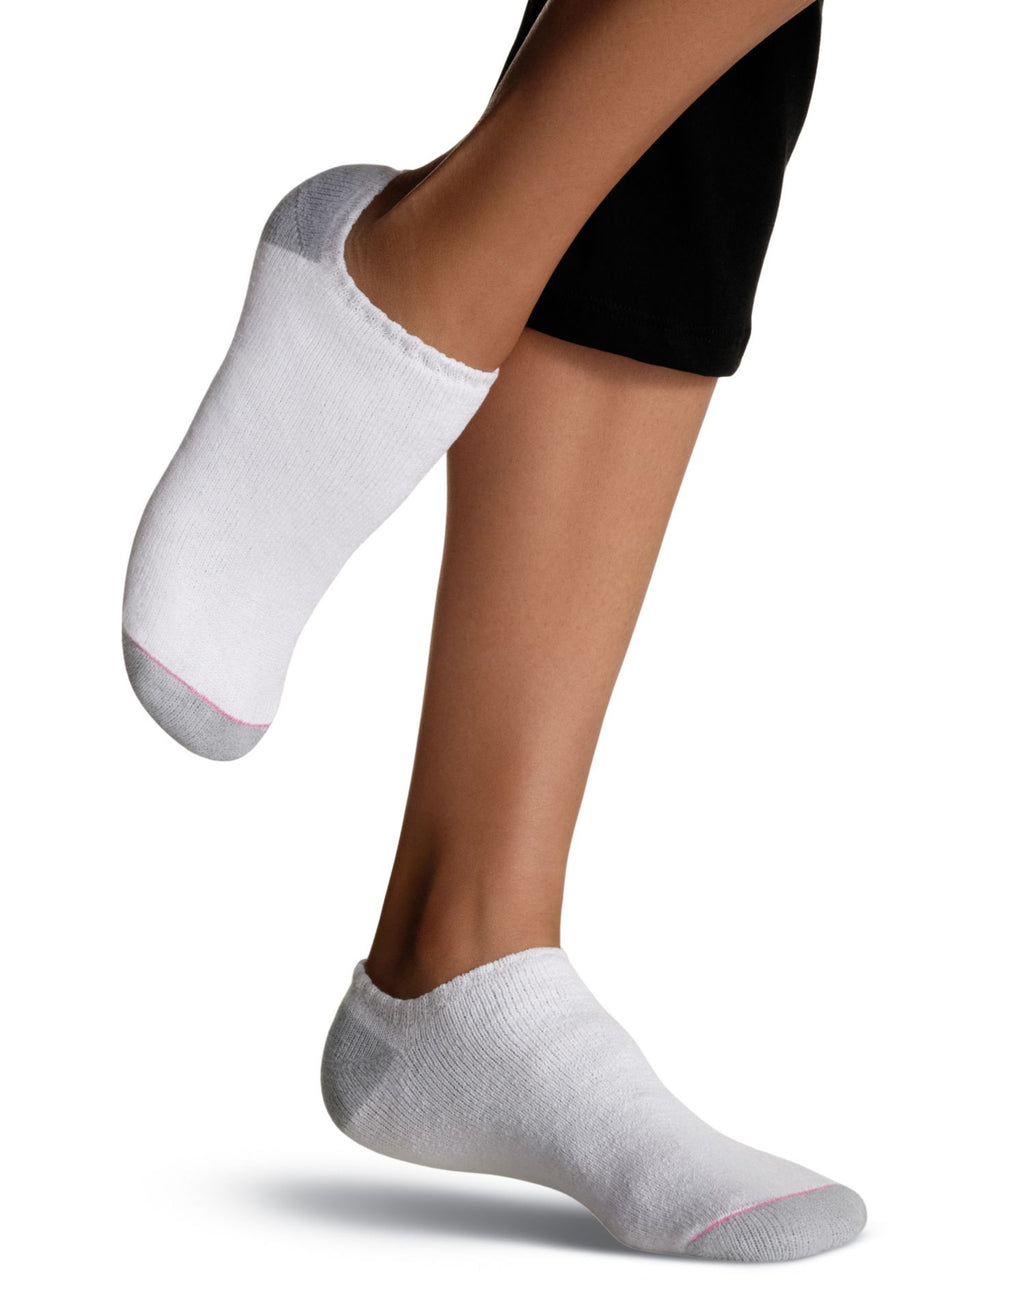 Hanes Cushion Extra Low Cut Socks 6 Pairs